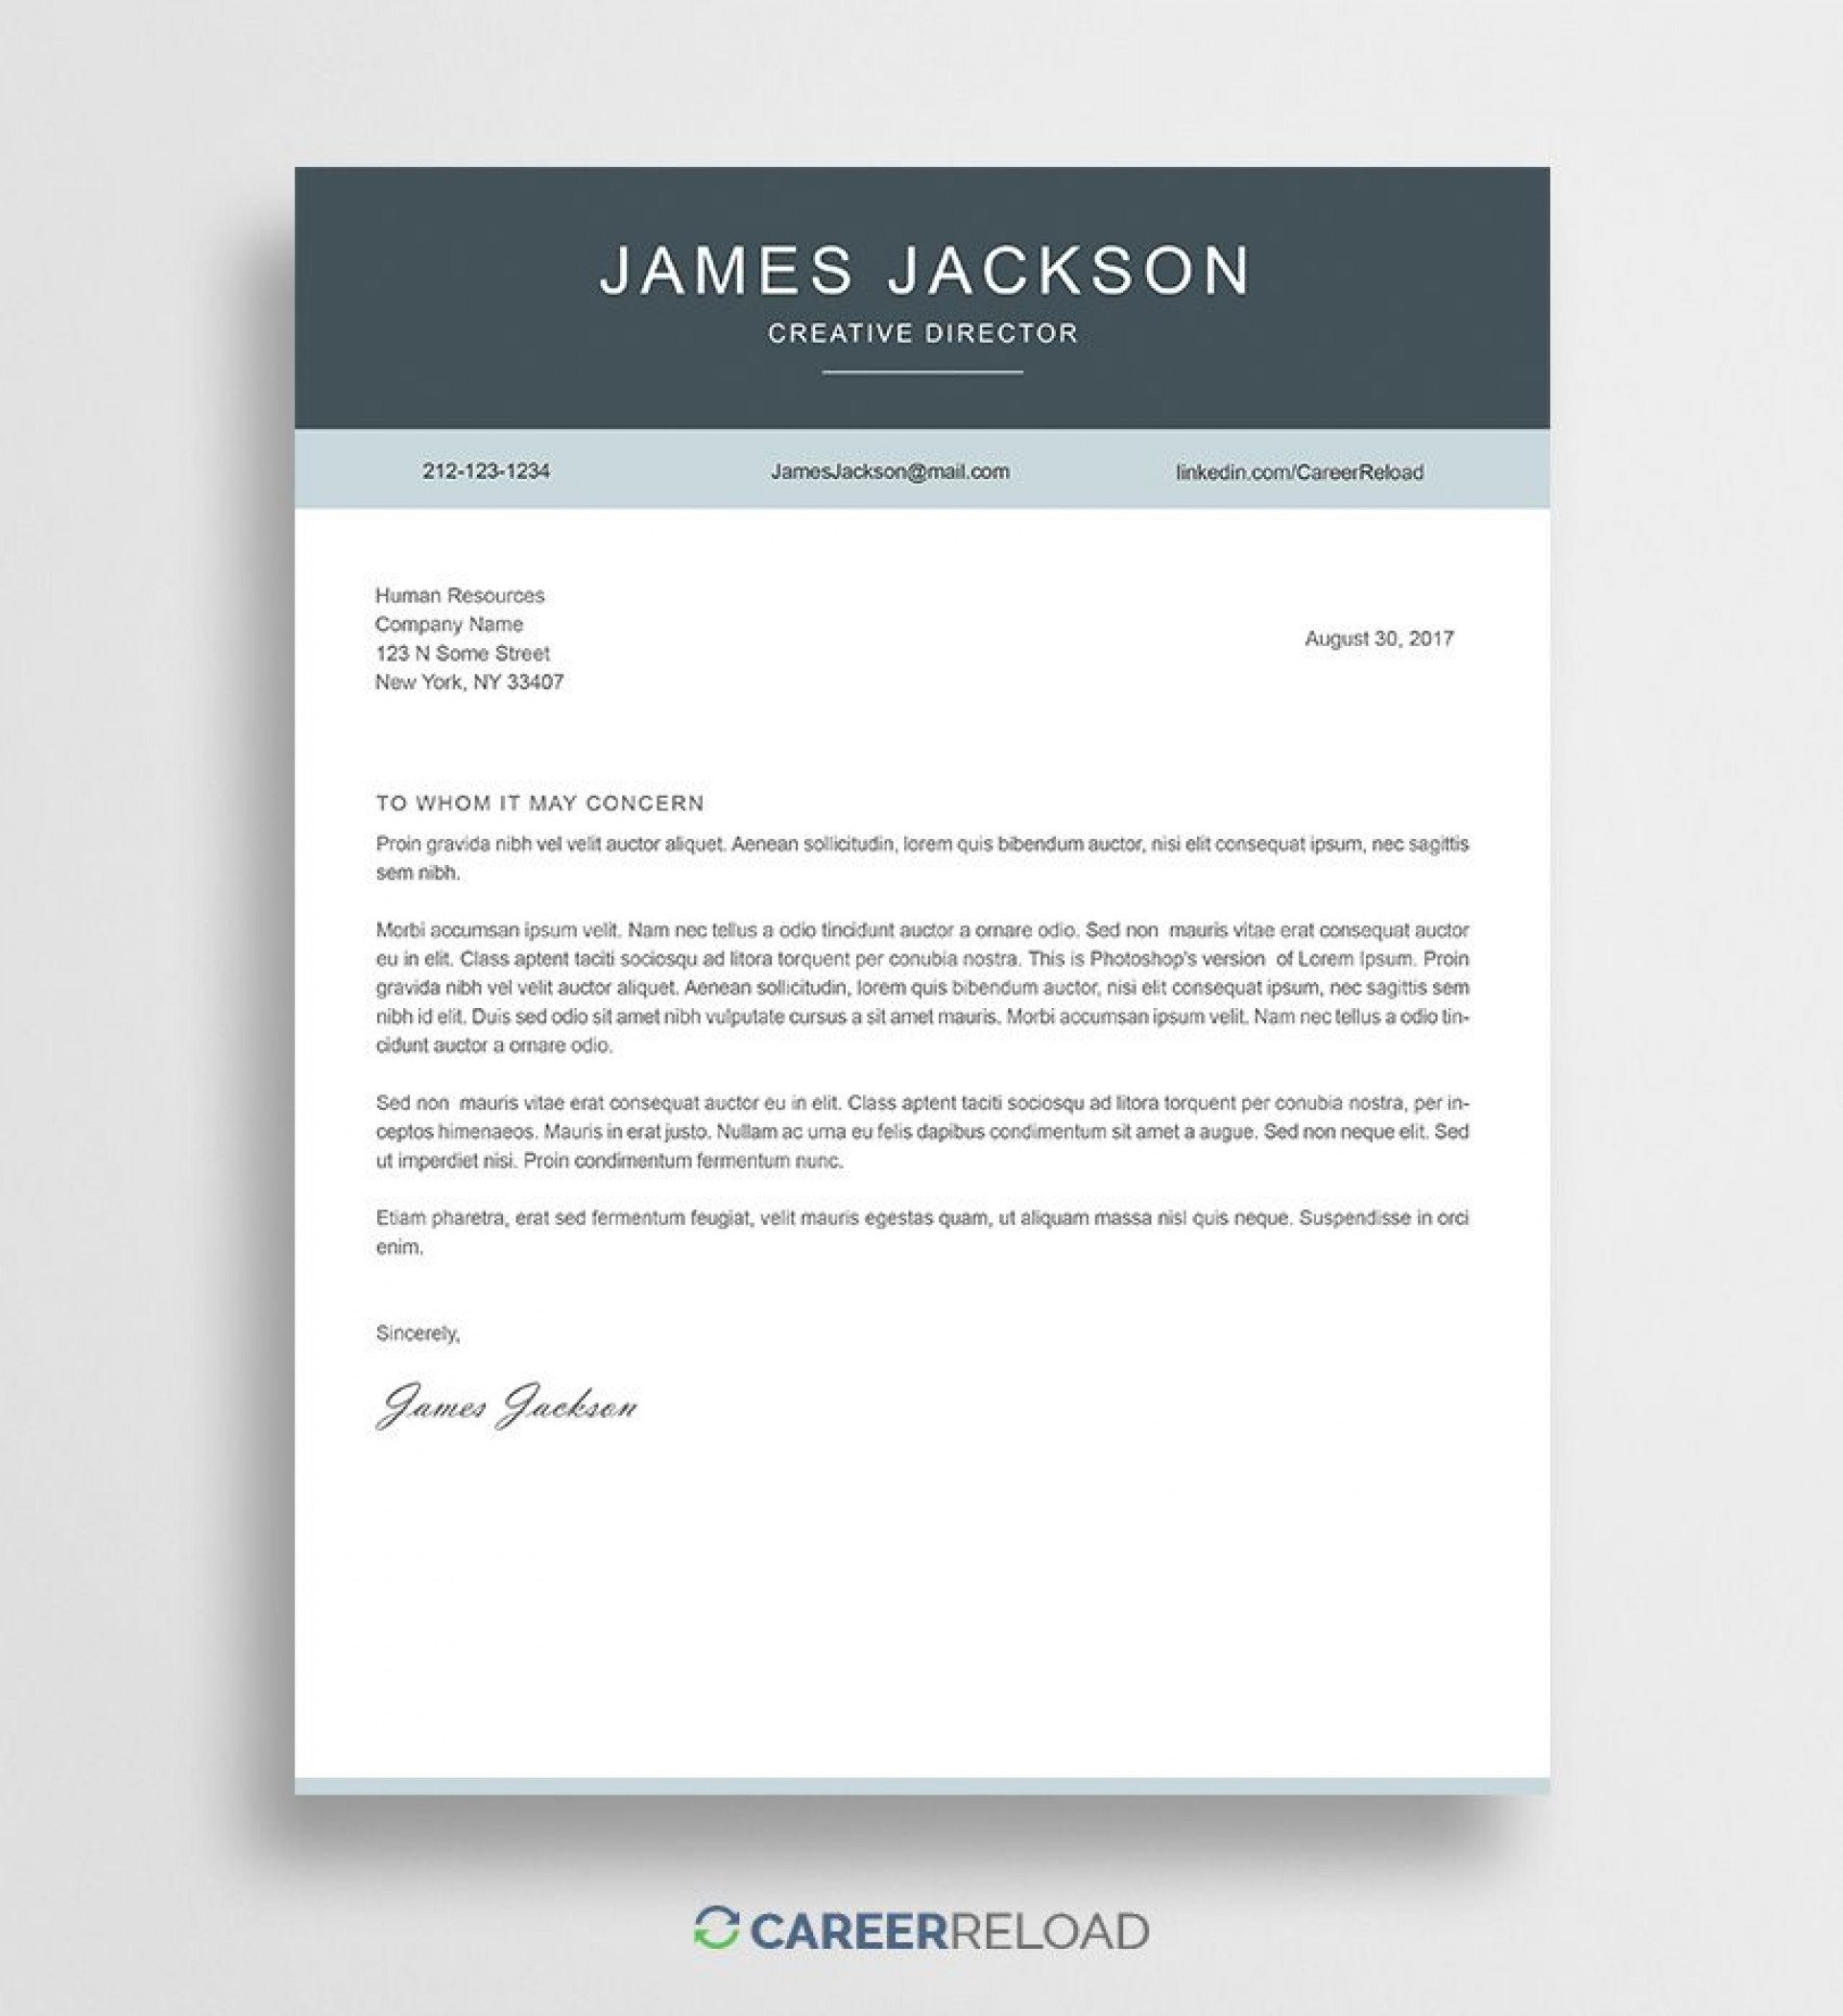 001 Formidable Cover Letter Free Template Image  Download Word Doc1920